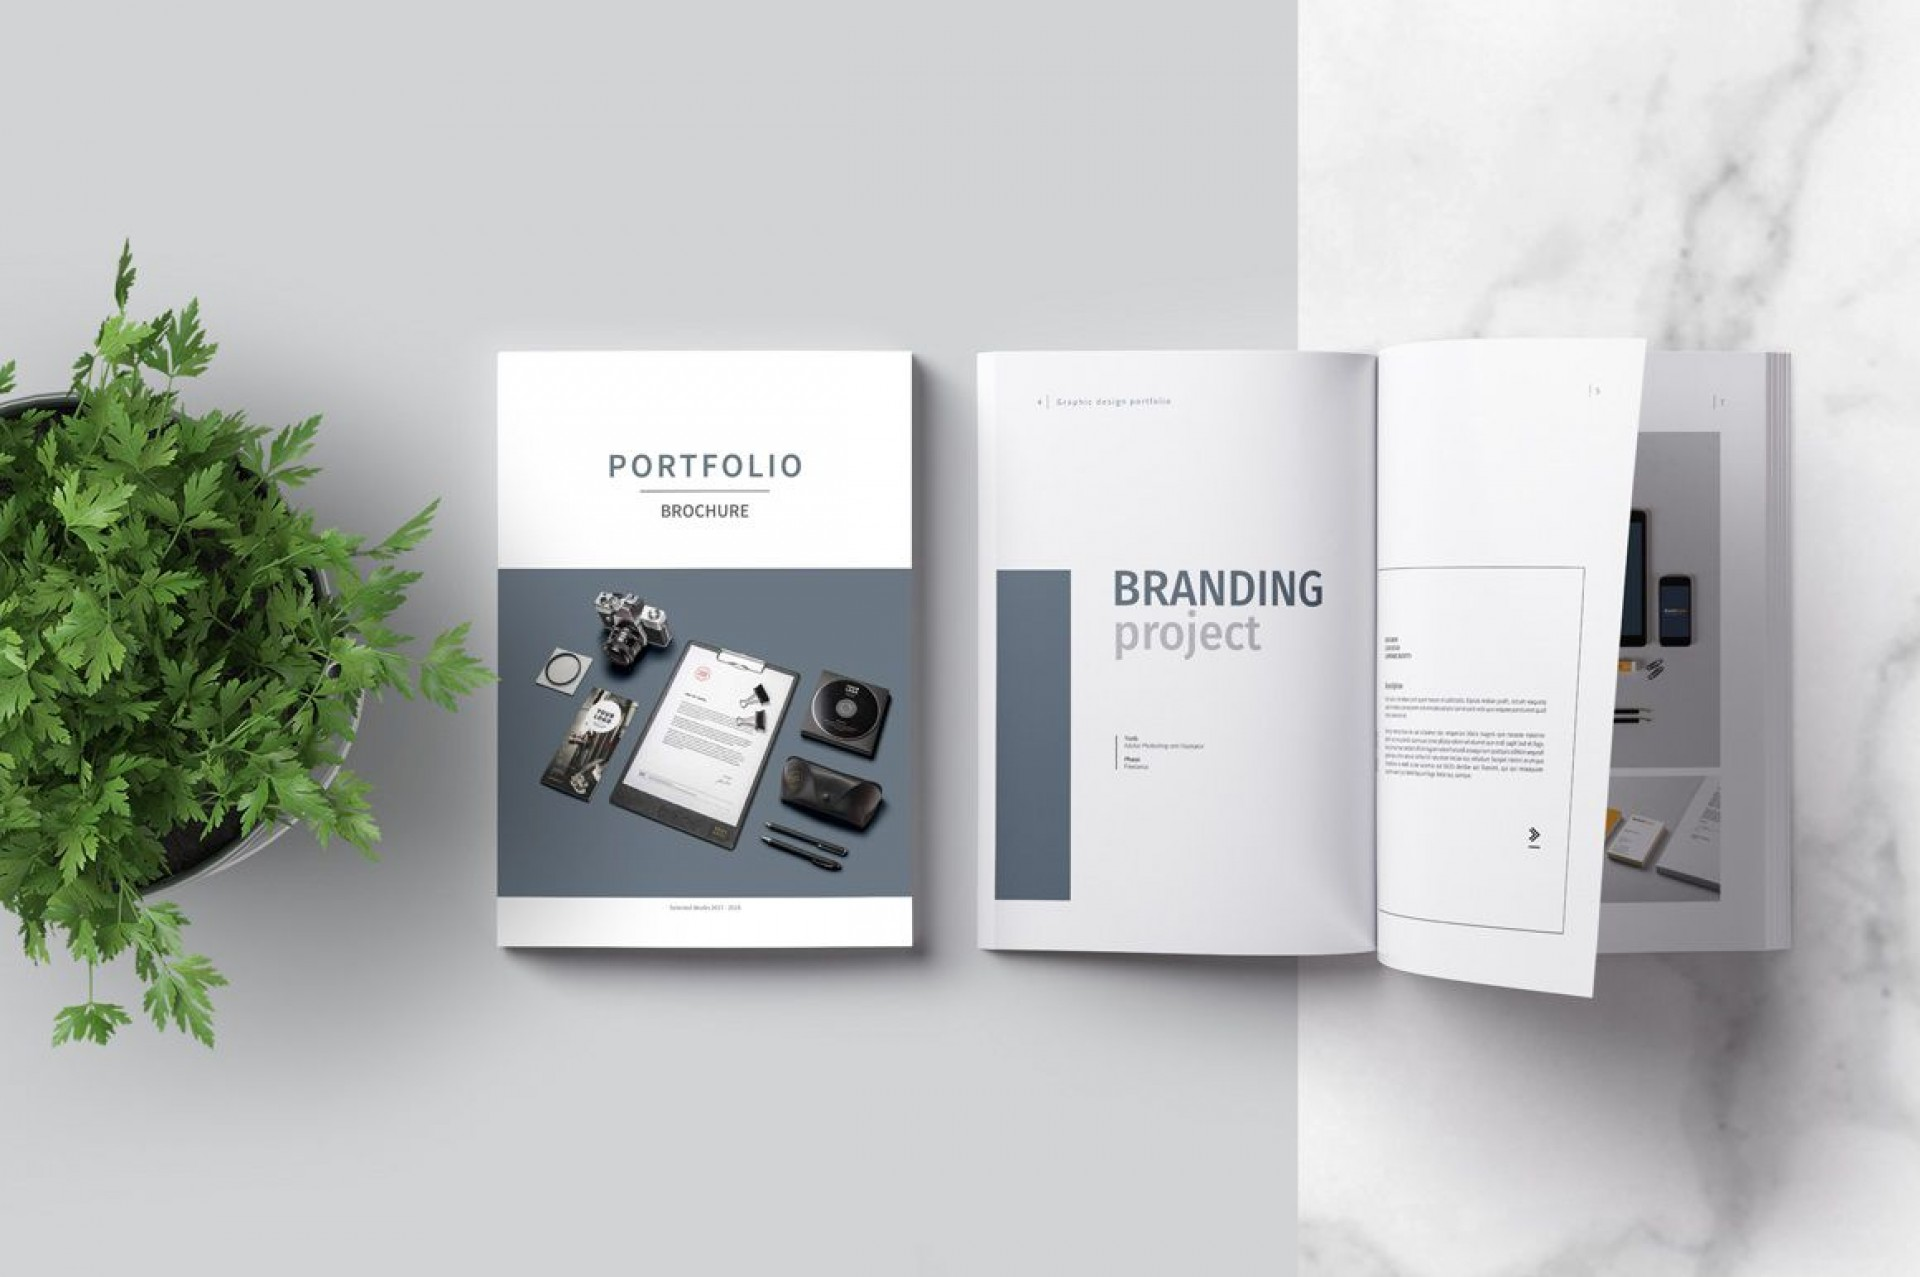 003 Stupendou Interior Design Portfolio Template Idea  Ppt Free Download Layout1920